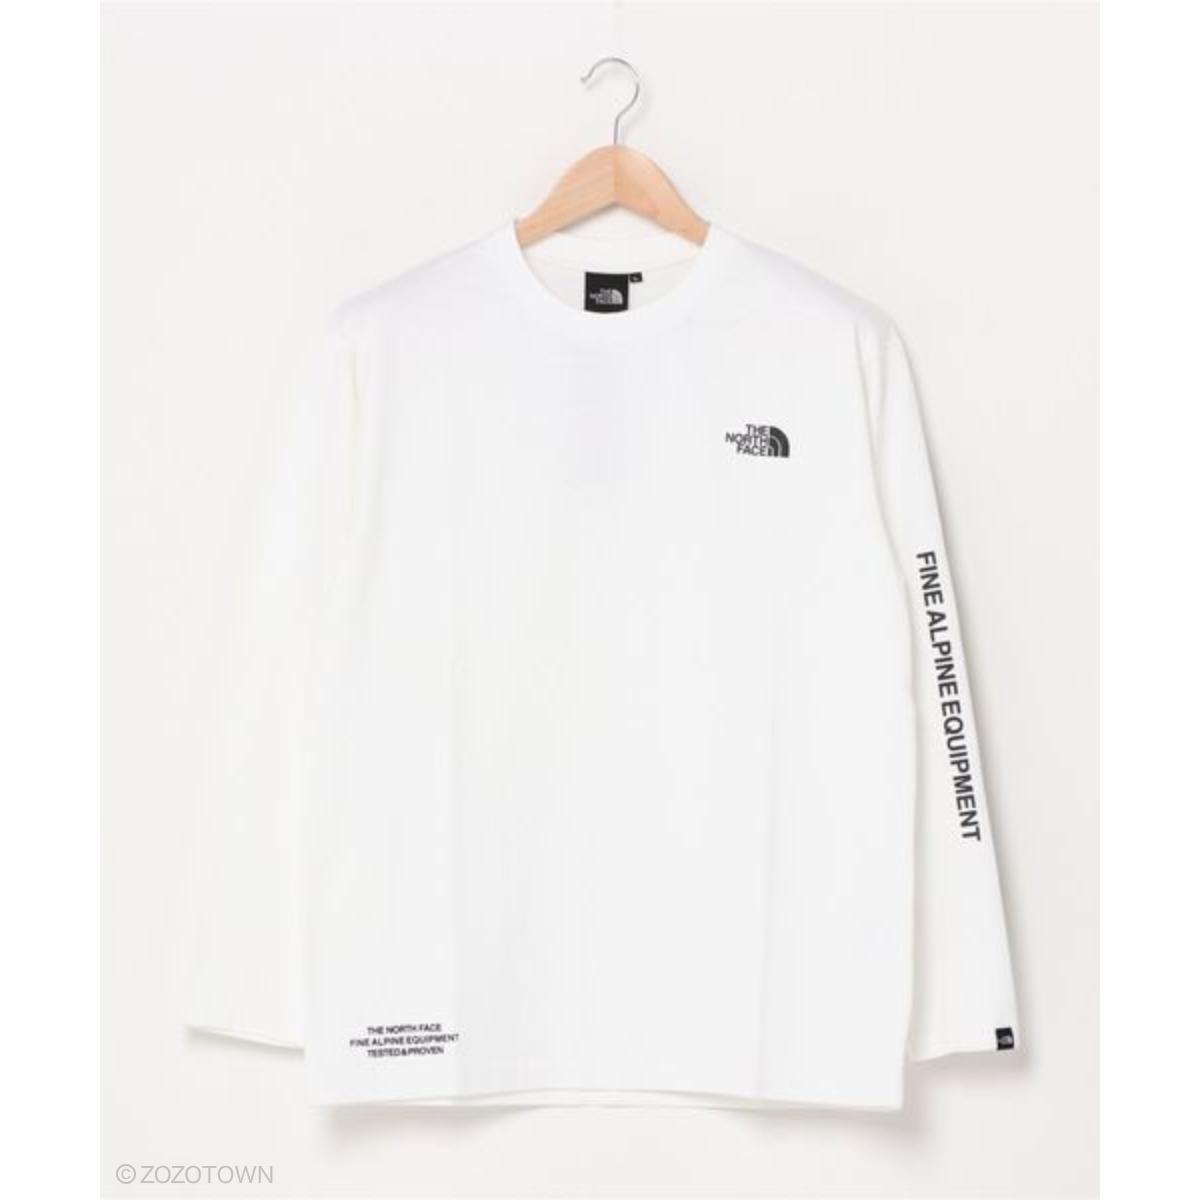 【THE NORTH FACE】 THE NORTH FACE/ザ・ノースフェイス L/S Tested Proven Tee